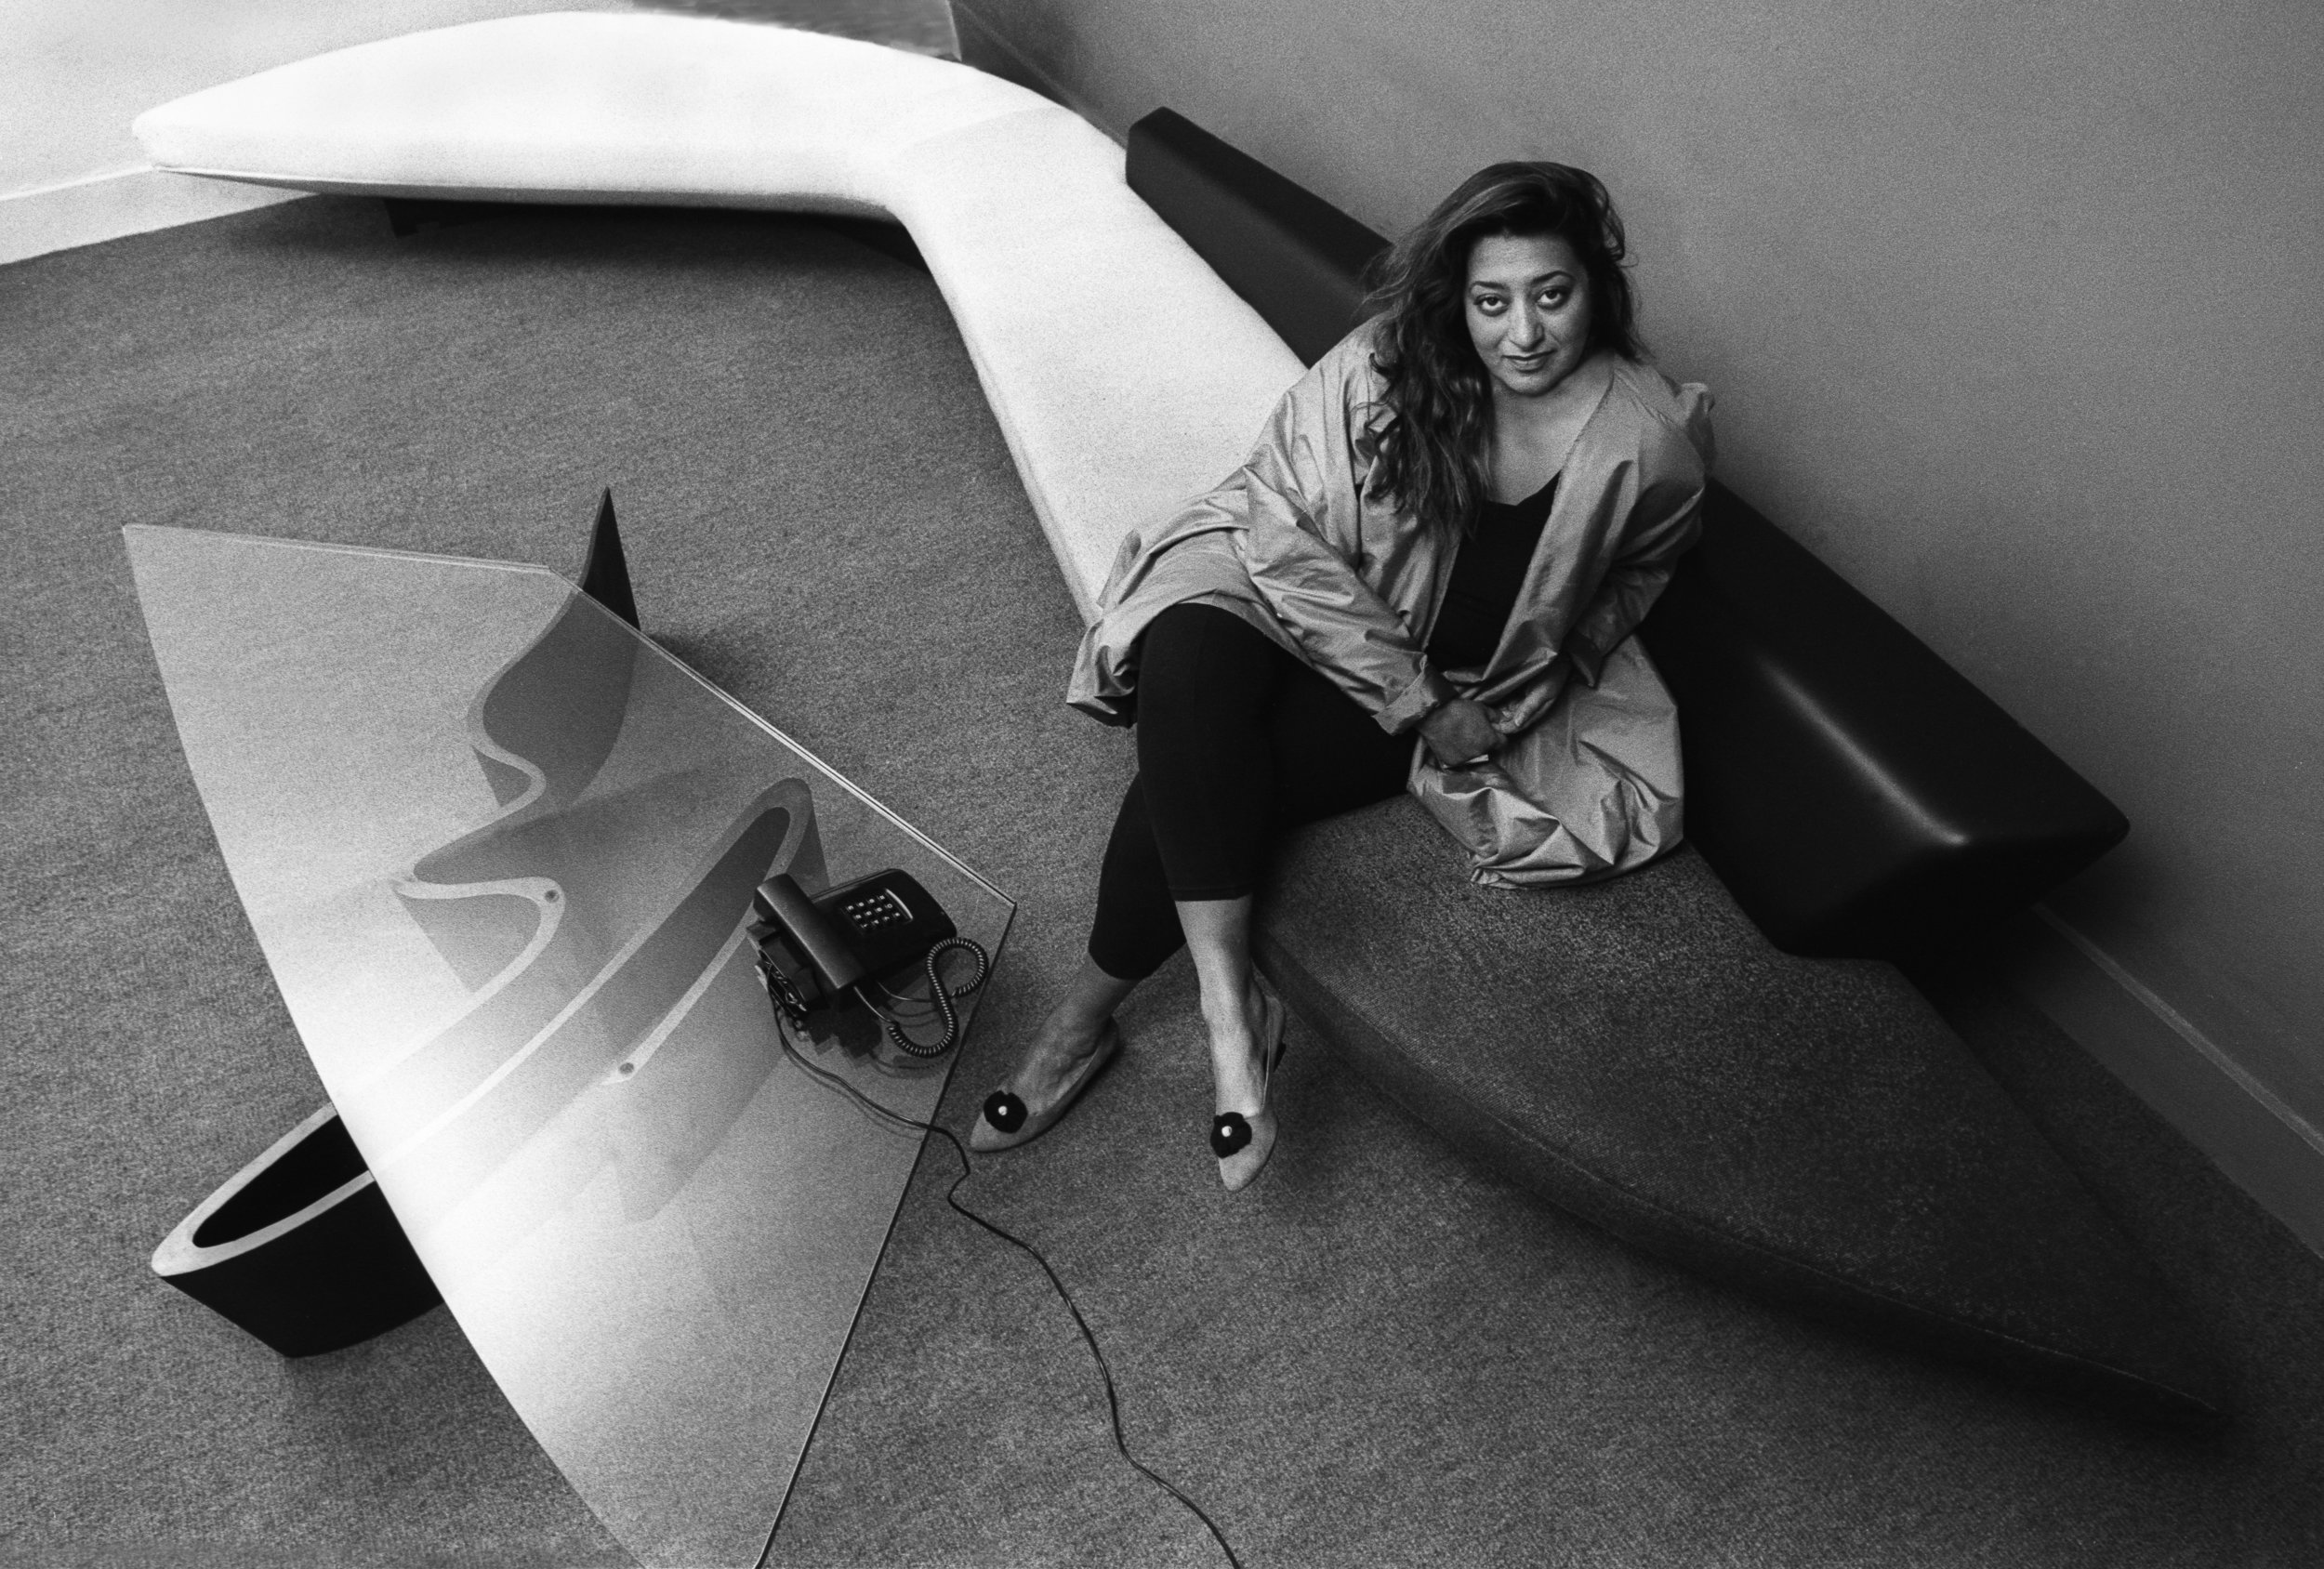 """Architecture is like writing. You have to edit it over and over so it looks effortless."" - Zaha Hadid, Architect."